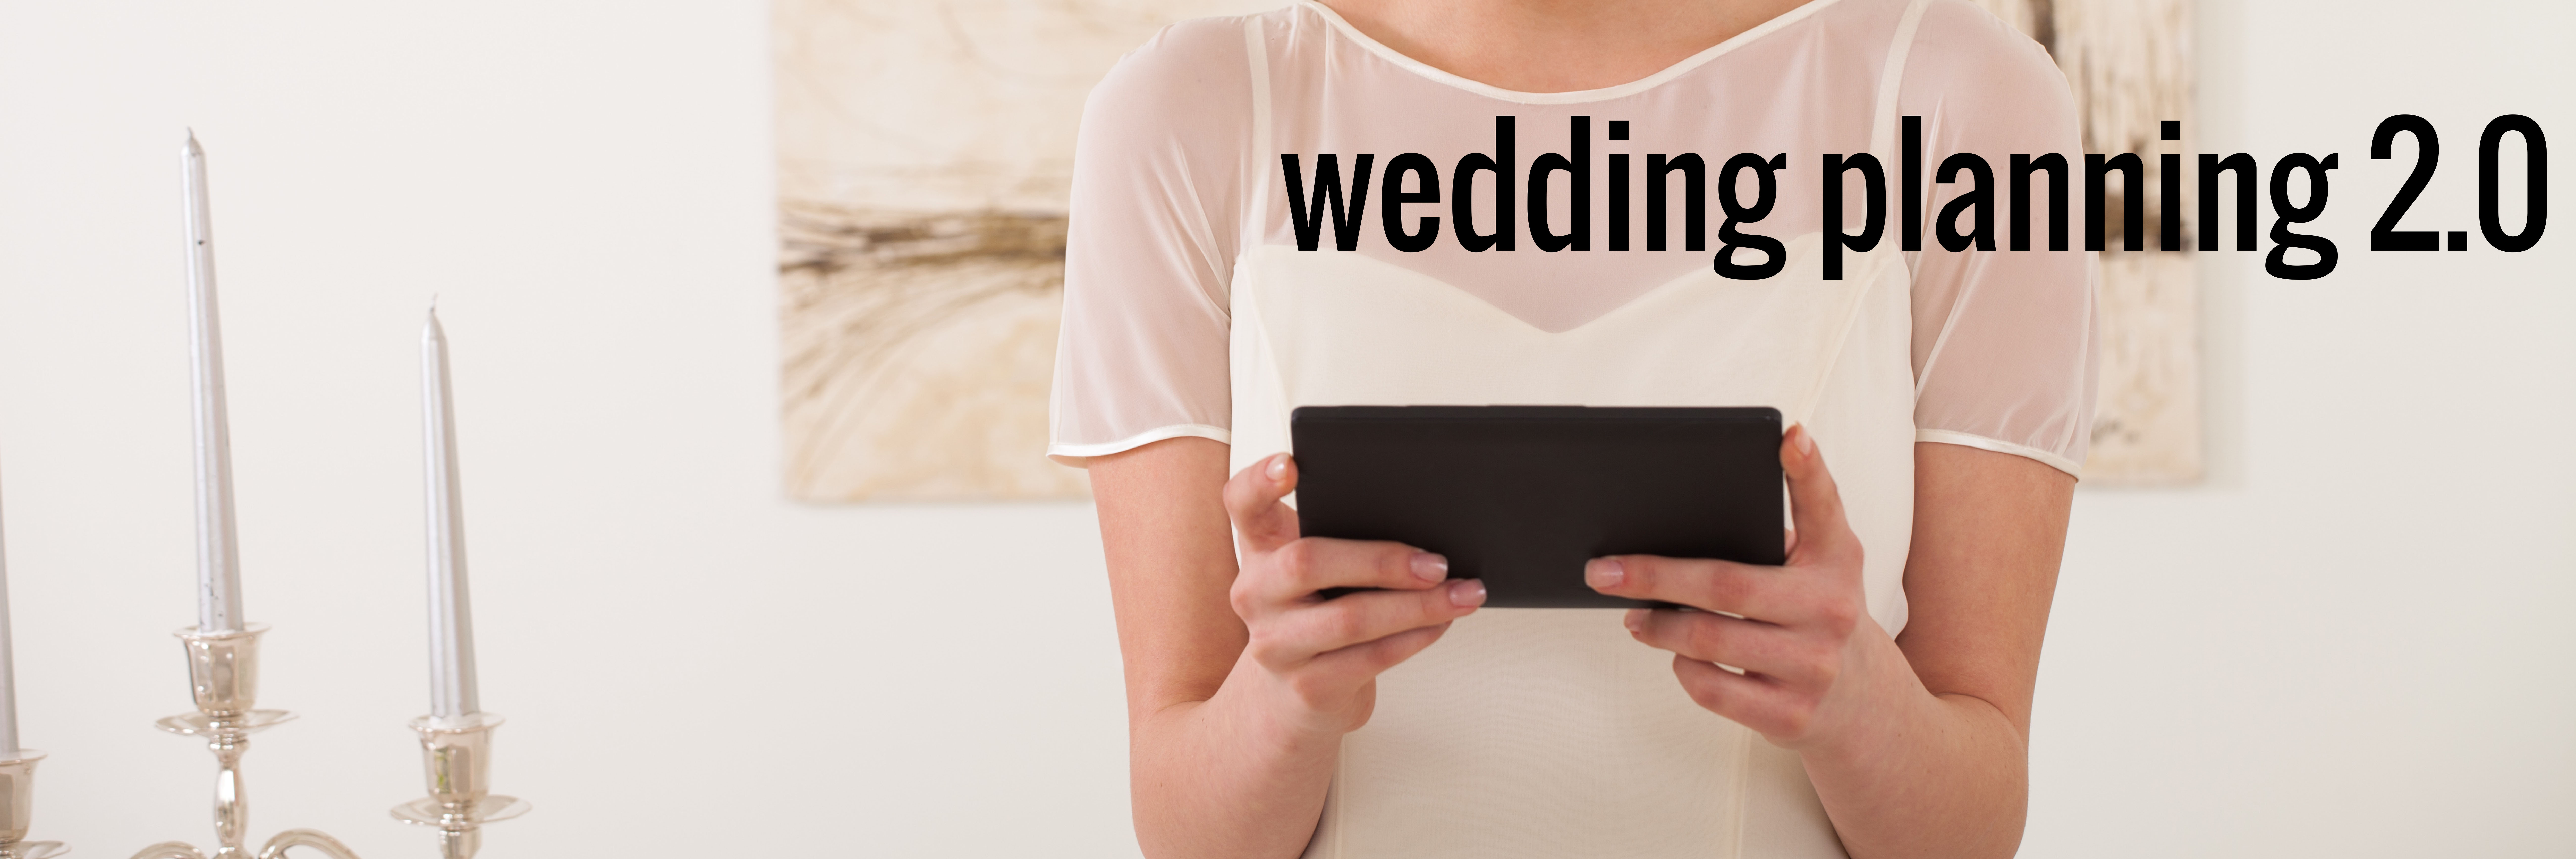 That Age Old Expression Theres An App For Directly Applies Plan Paperless And Back Up Often Dont Spend 200 On A Lavish Wedding Planning Binder